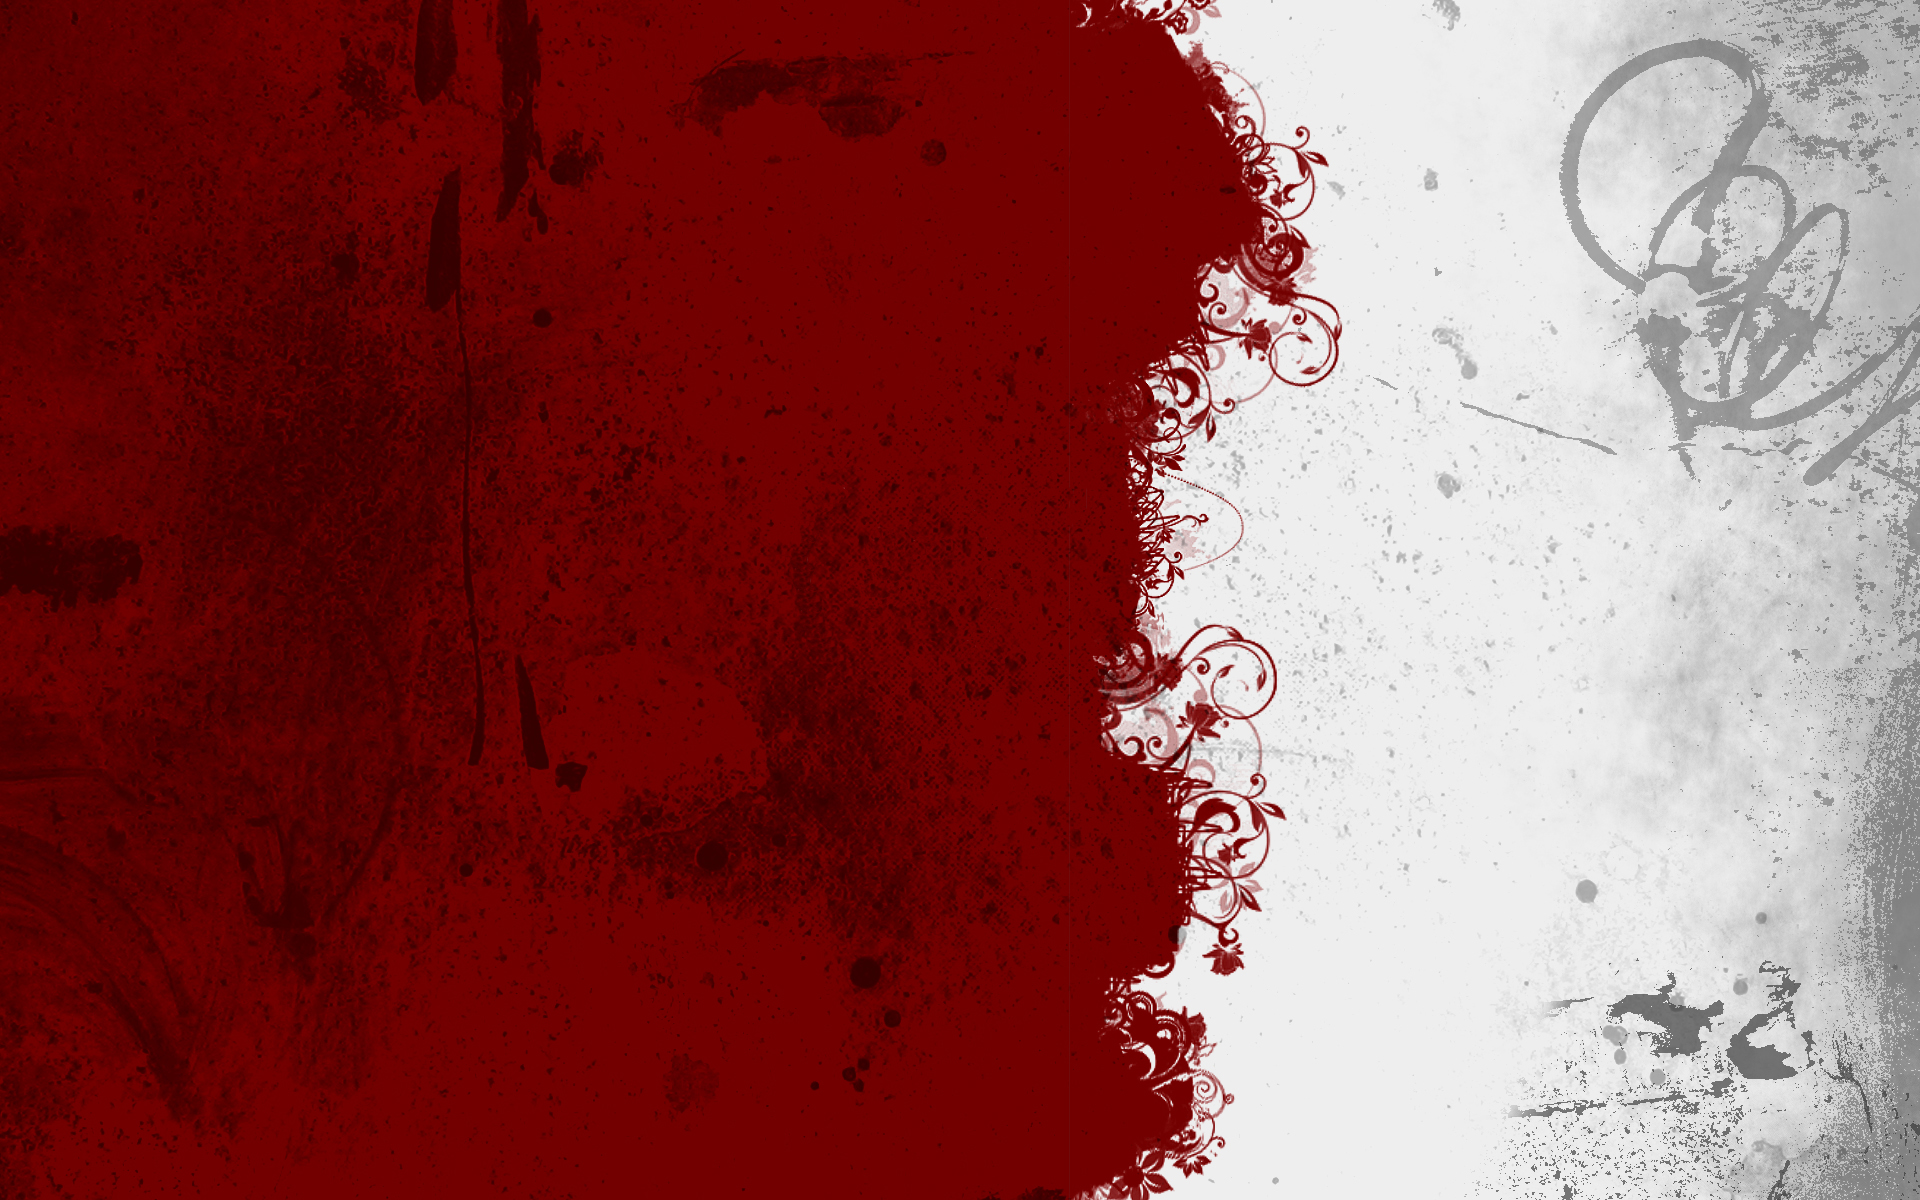 red and white wallpaper backgrounds - wallpapersafari